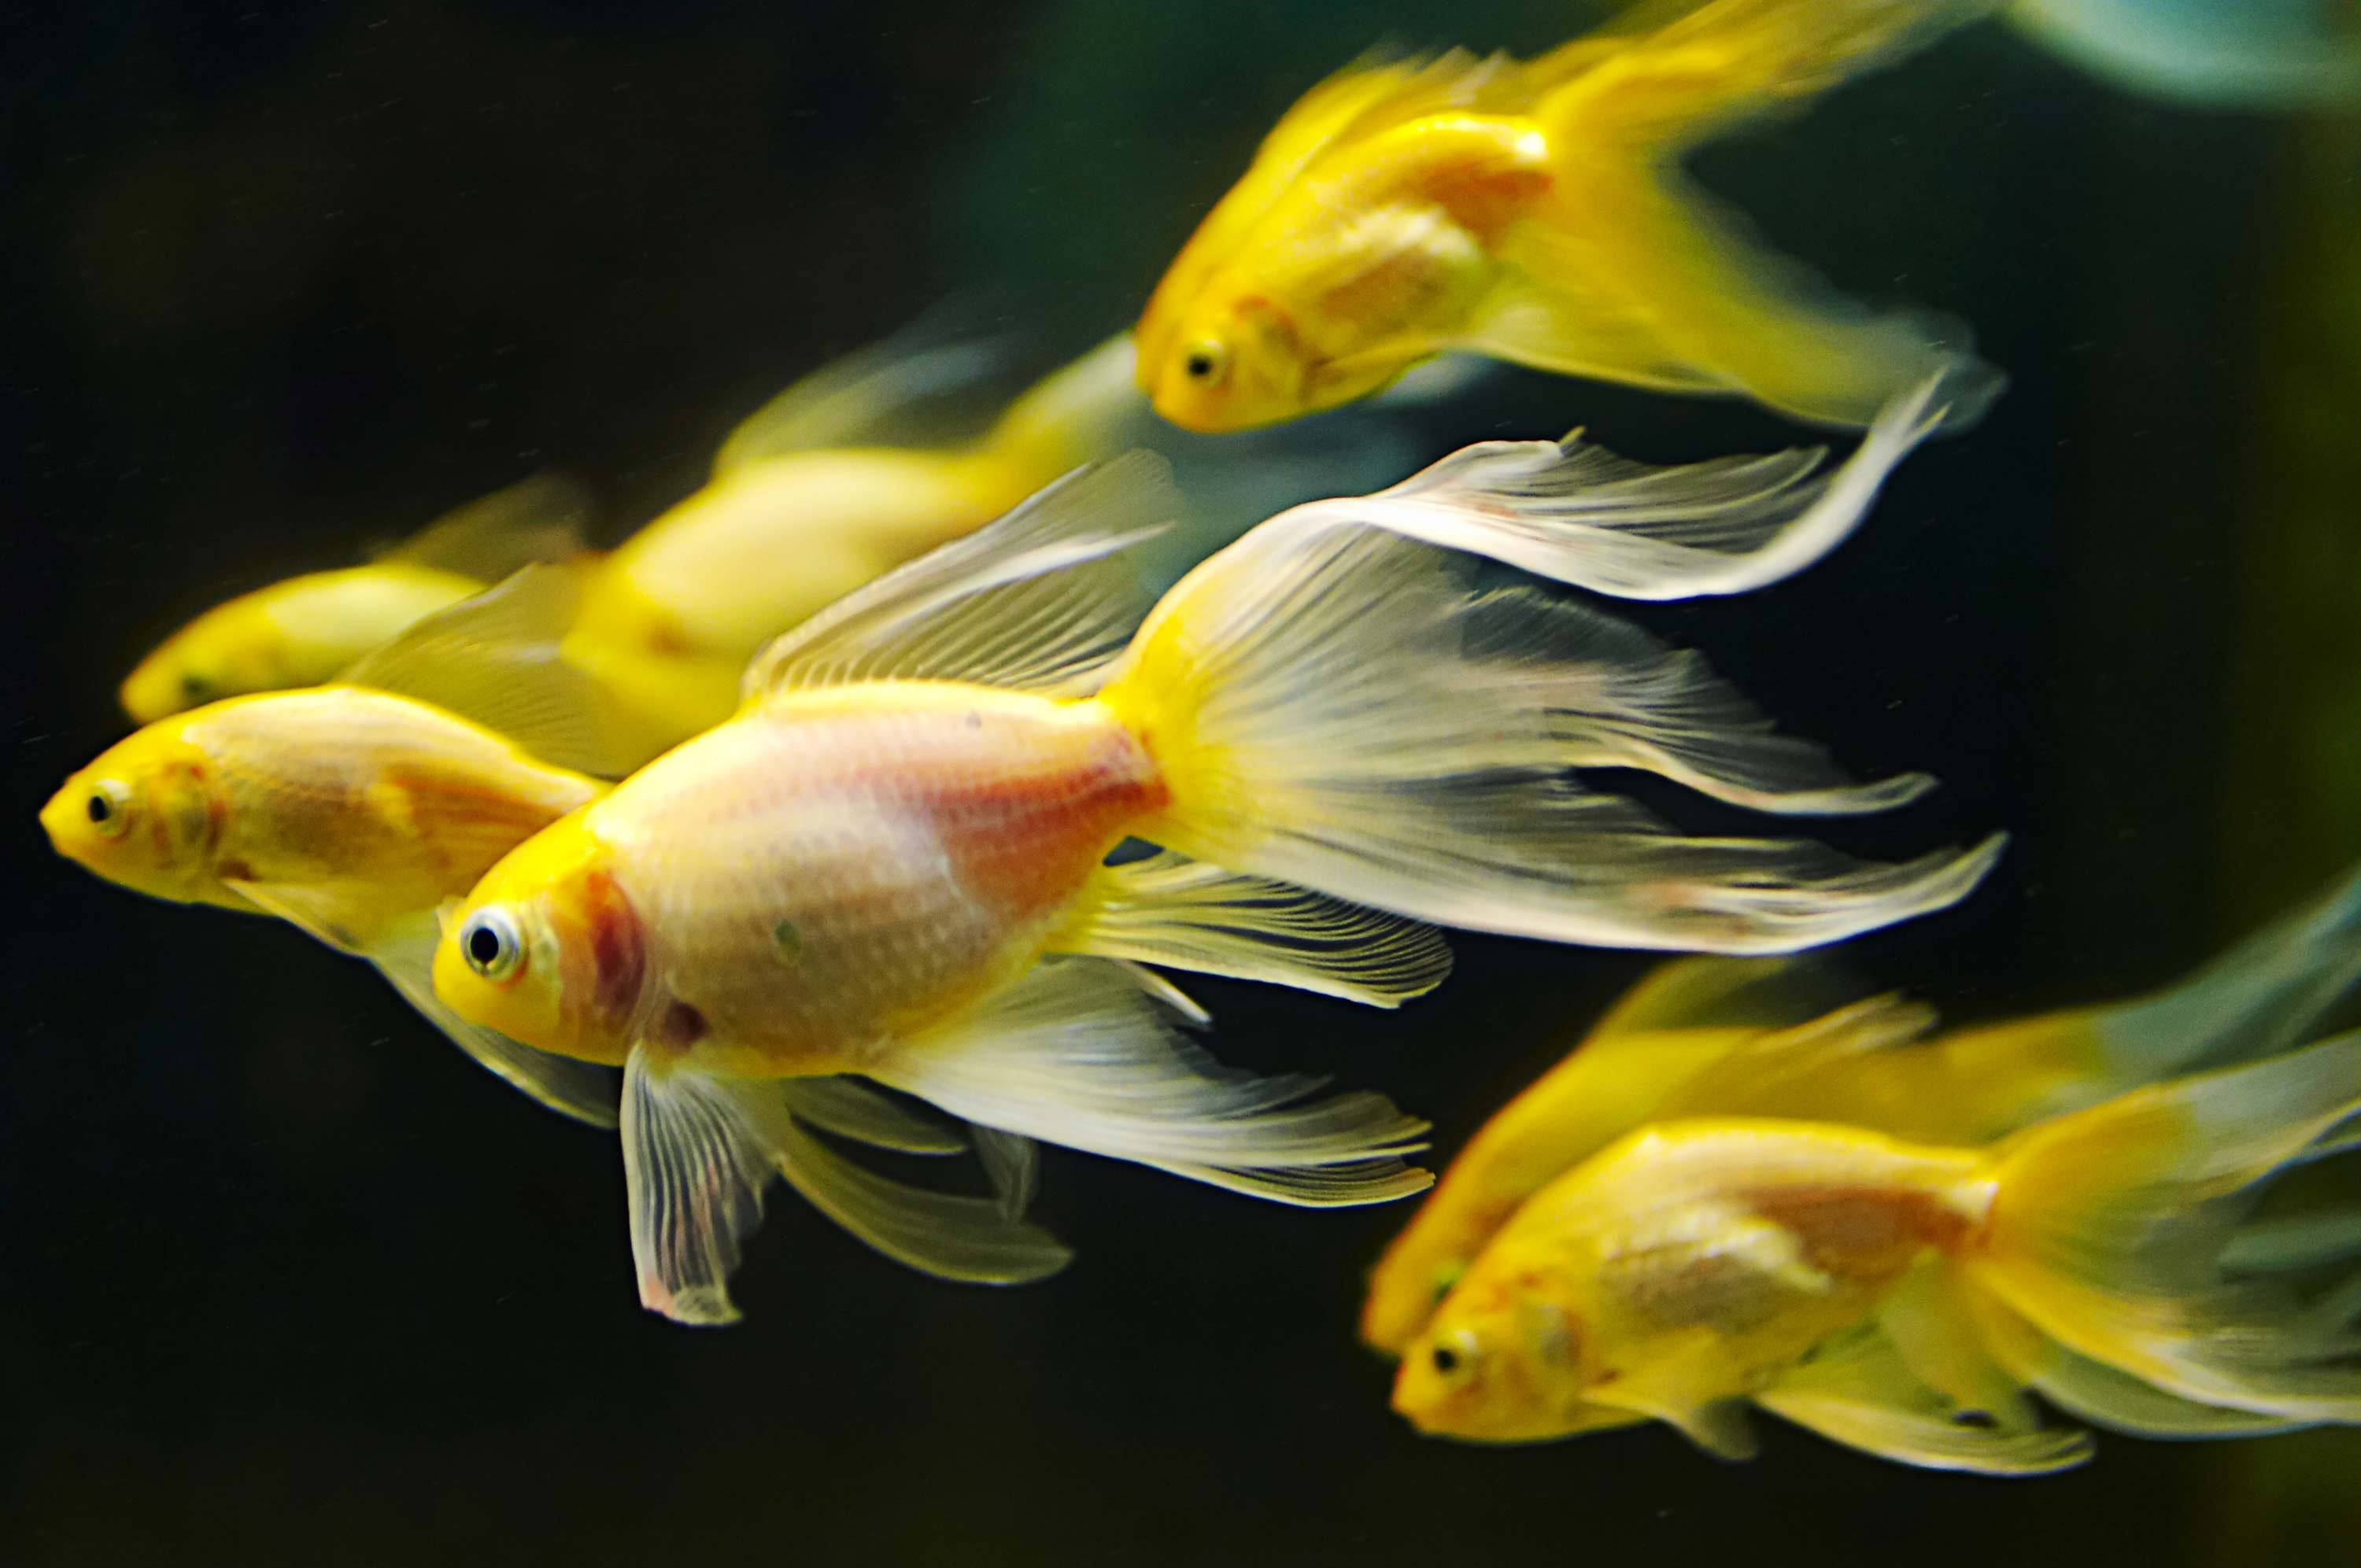 Underwater fish fishes goldfish gold fish wallpaper 3000x1993 3000x1993